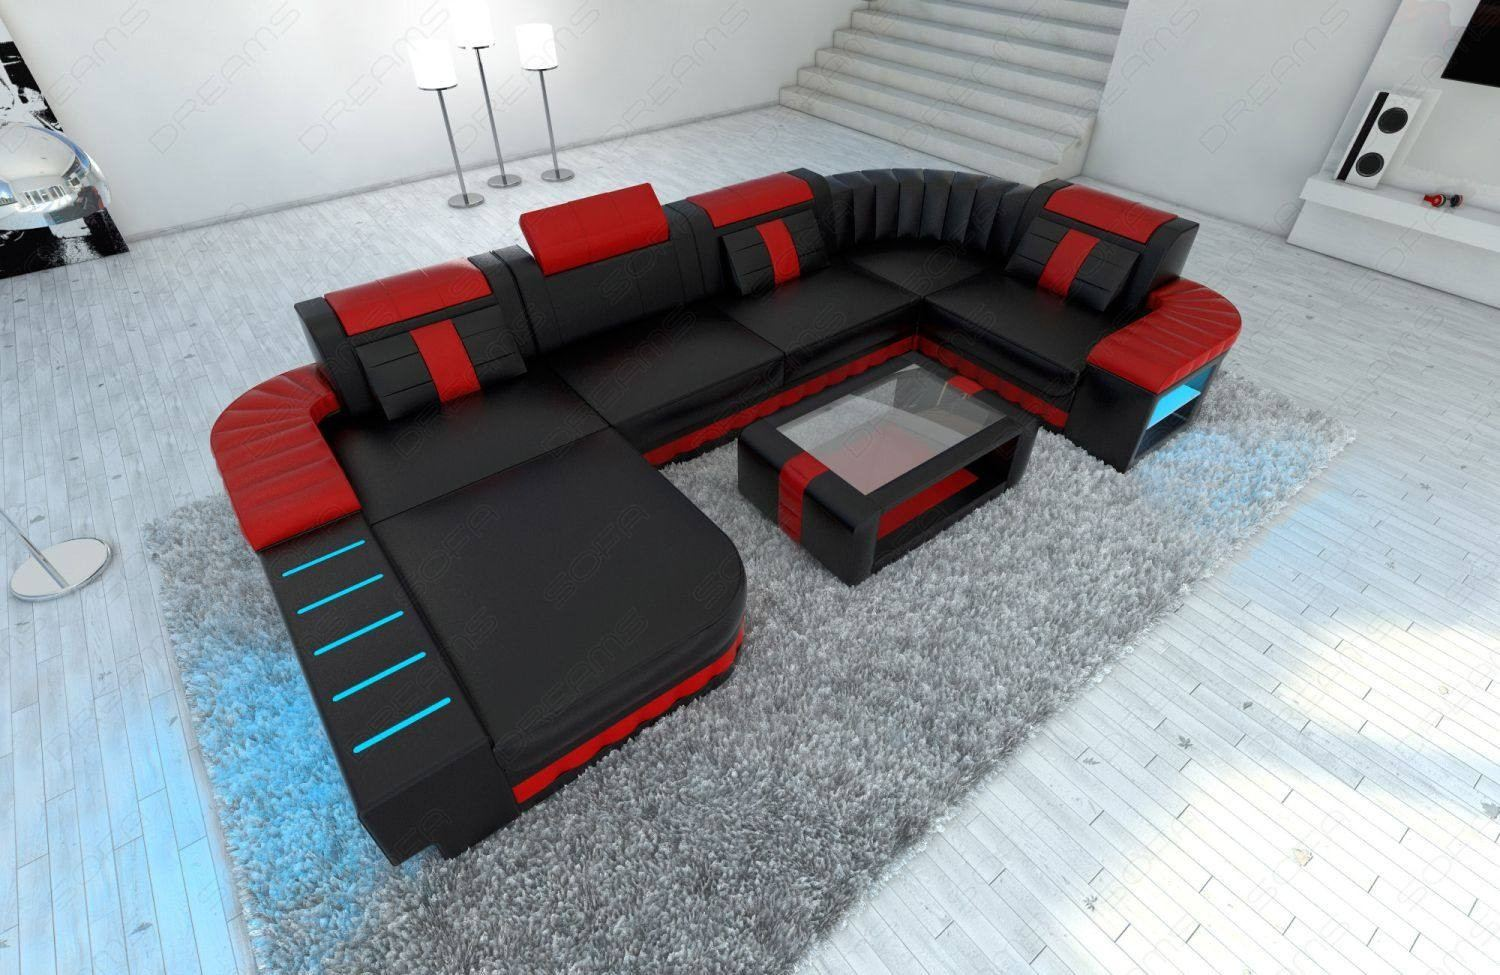 Peachy Design Sectional Sofa Boston Led U Shape Pabps2019 Chair Design Images Pabps2019Com